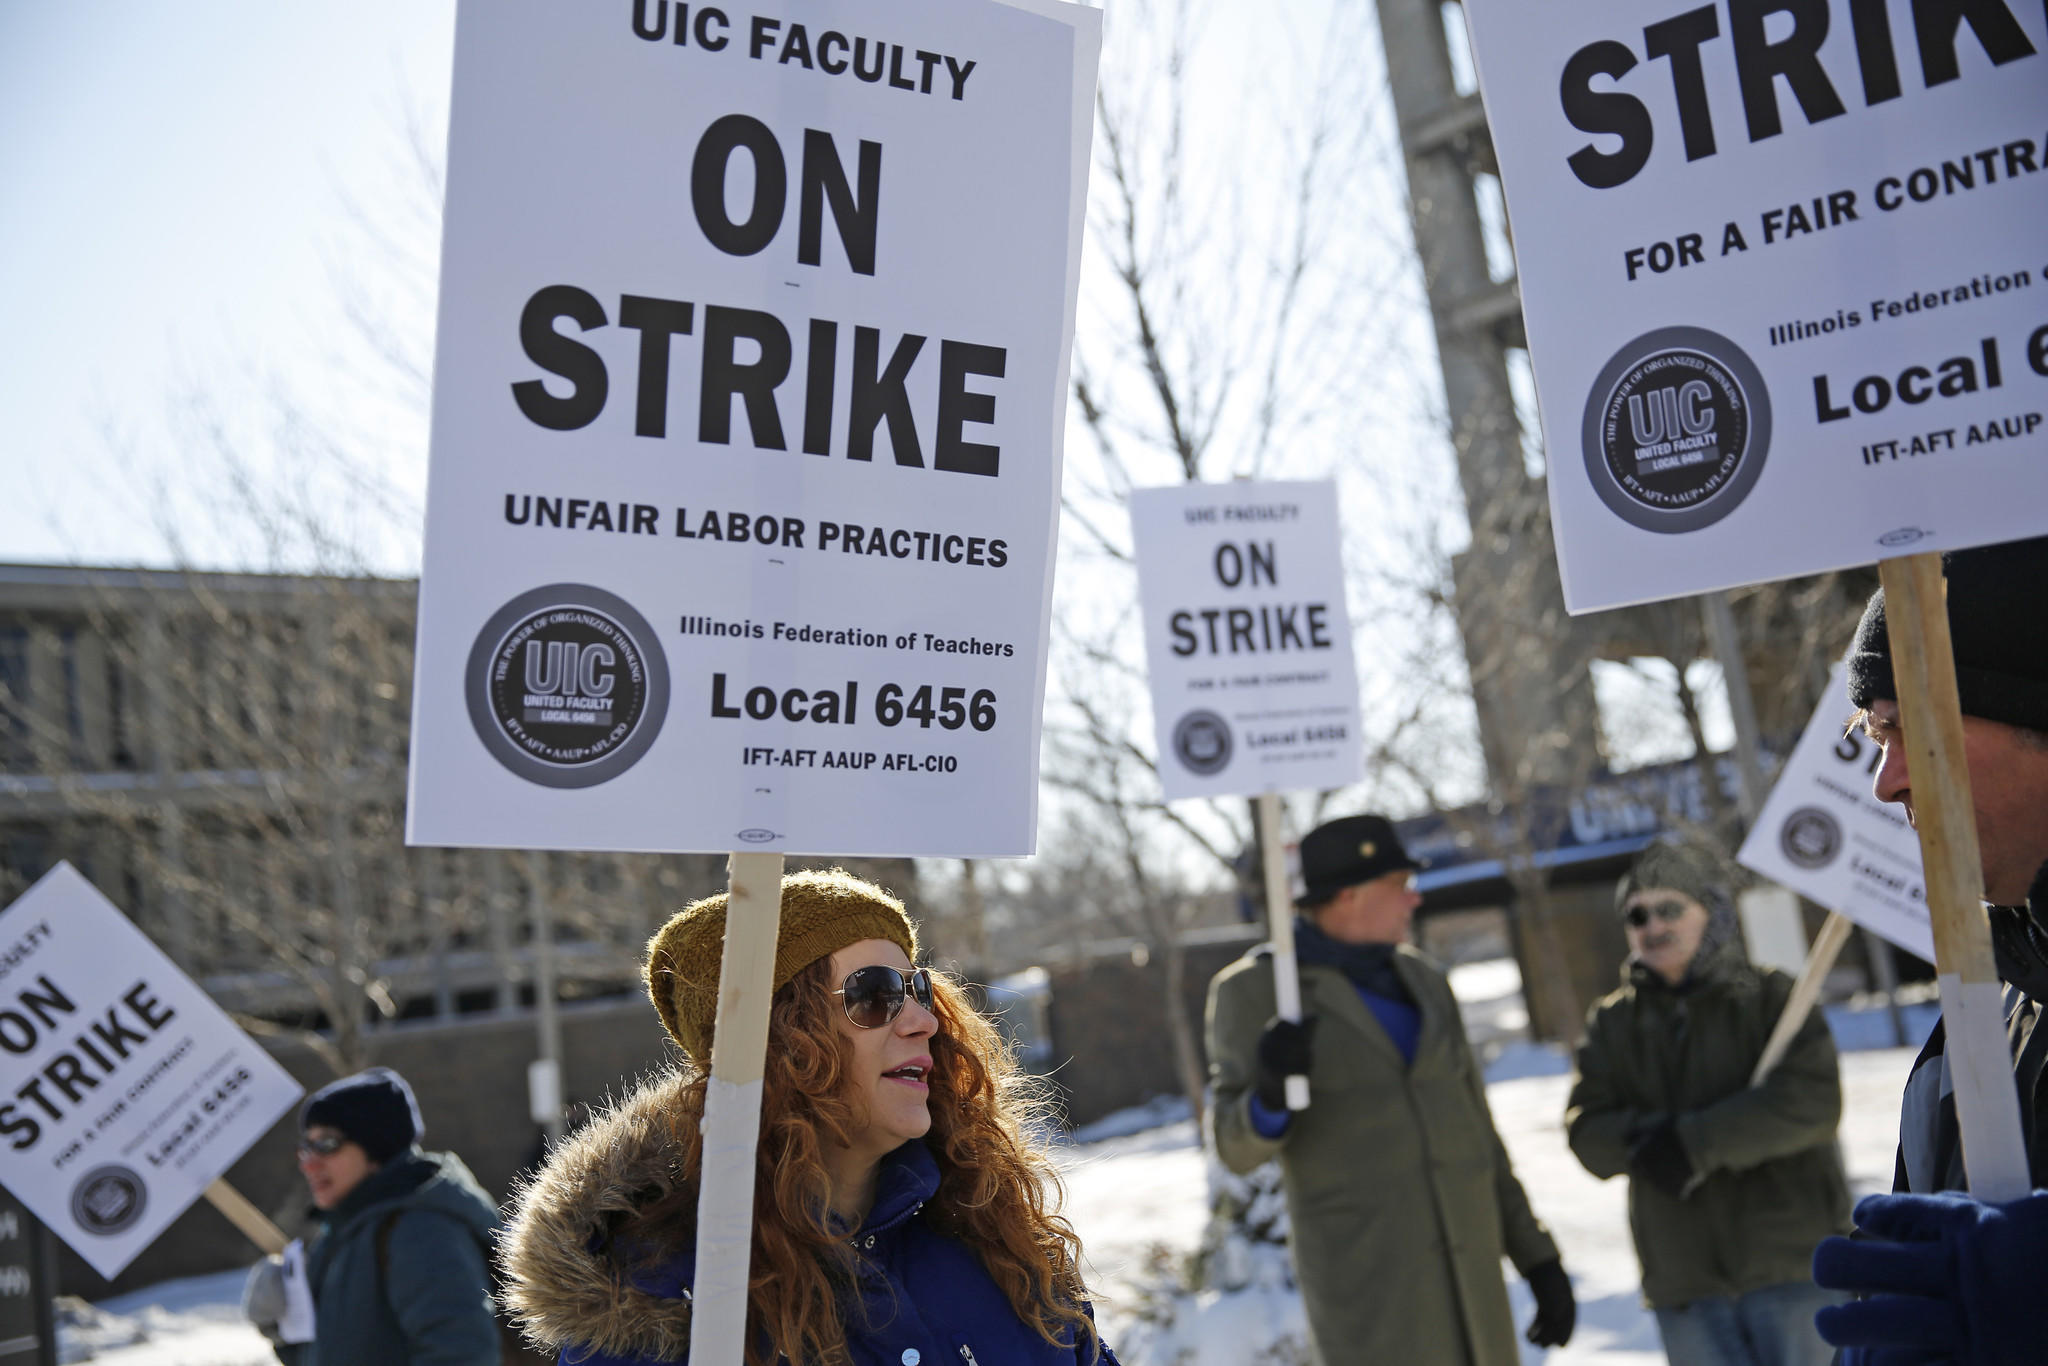 Jennifer Lewis, left, a lecturer in the English department at the University of Illinois at Chicago, chats with Jay Shearer, visiting lecturer in the English department, as they join other picketers near University Hall on the east campus of UIC on Tuesday.